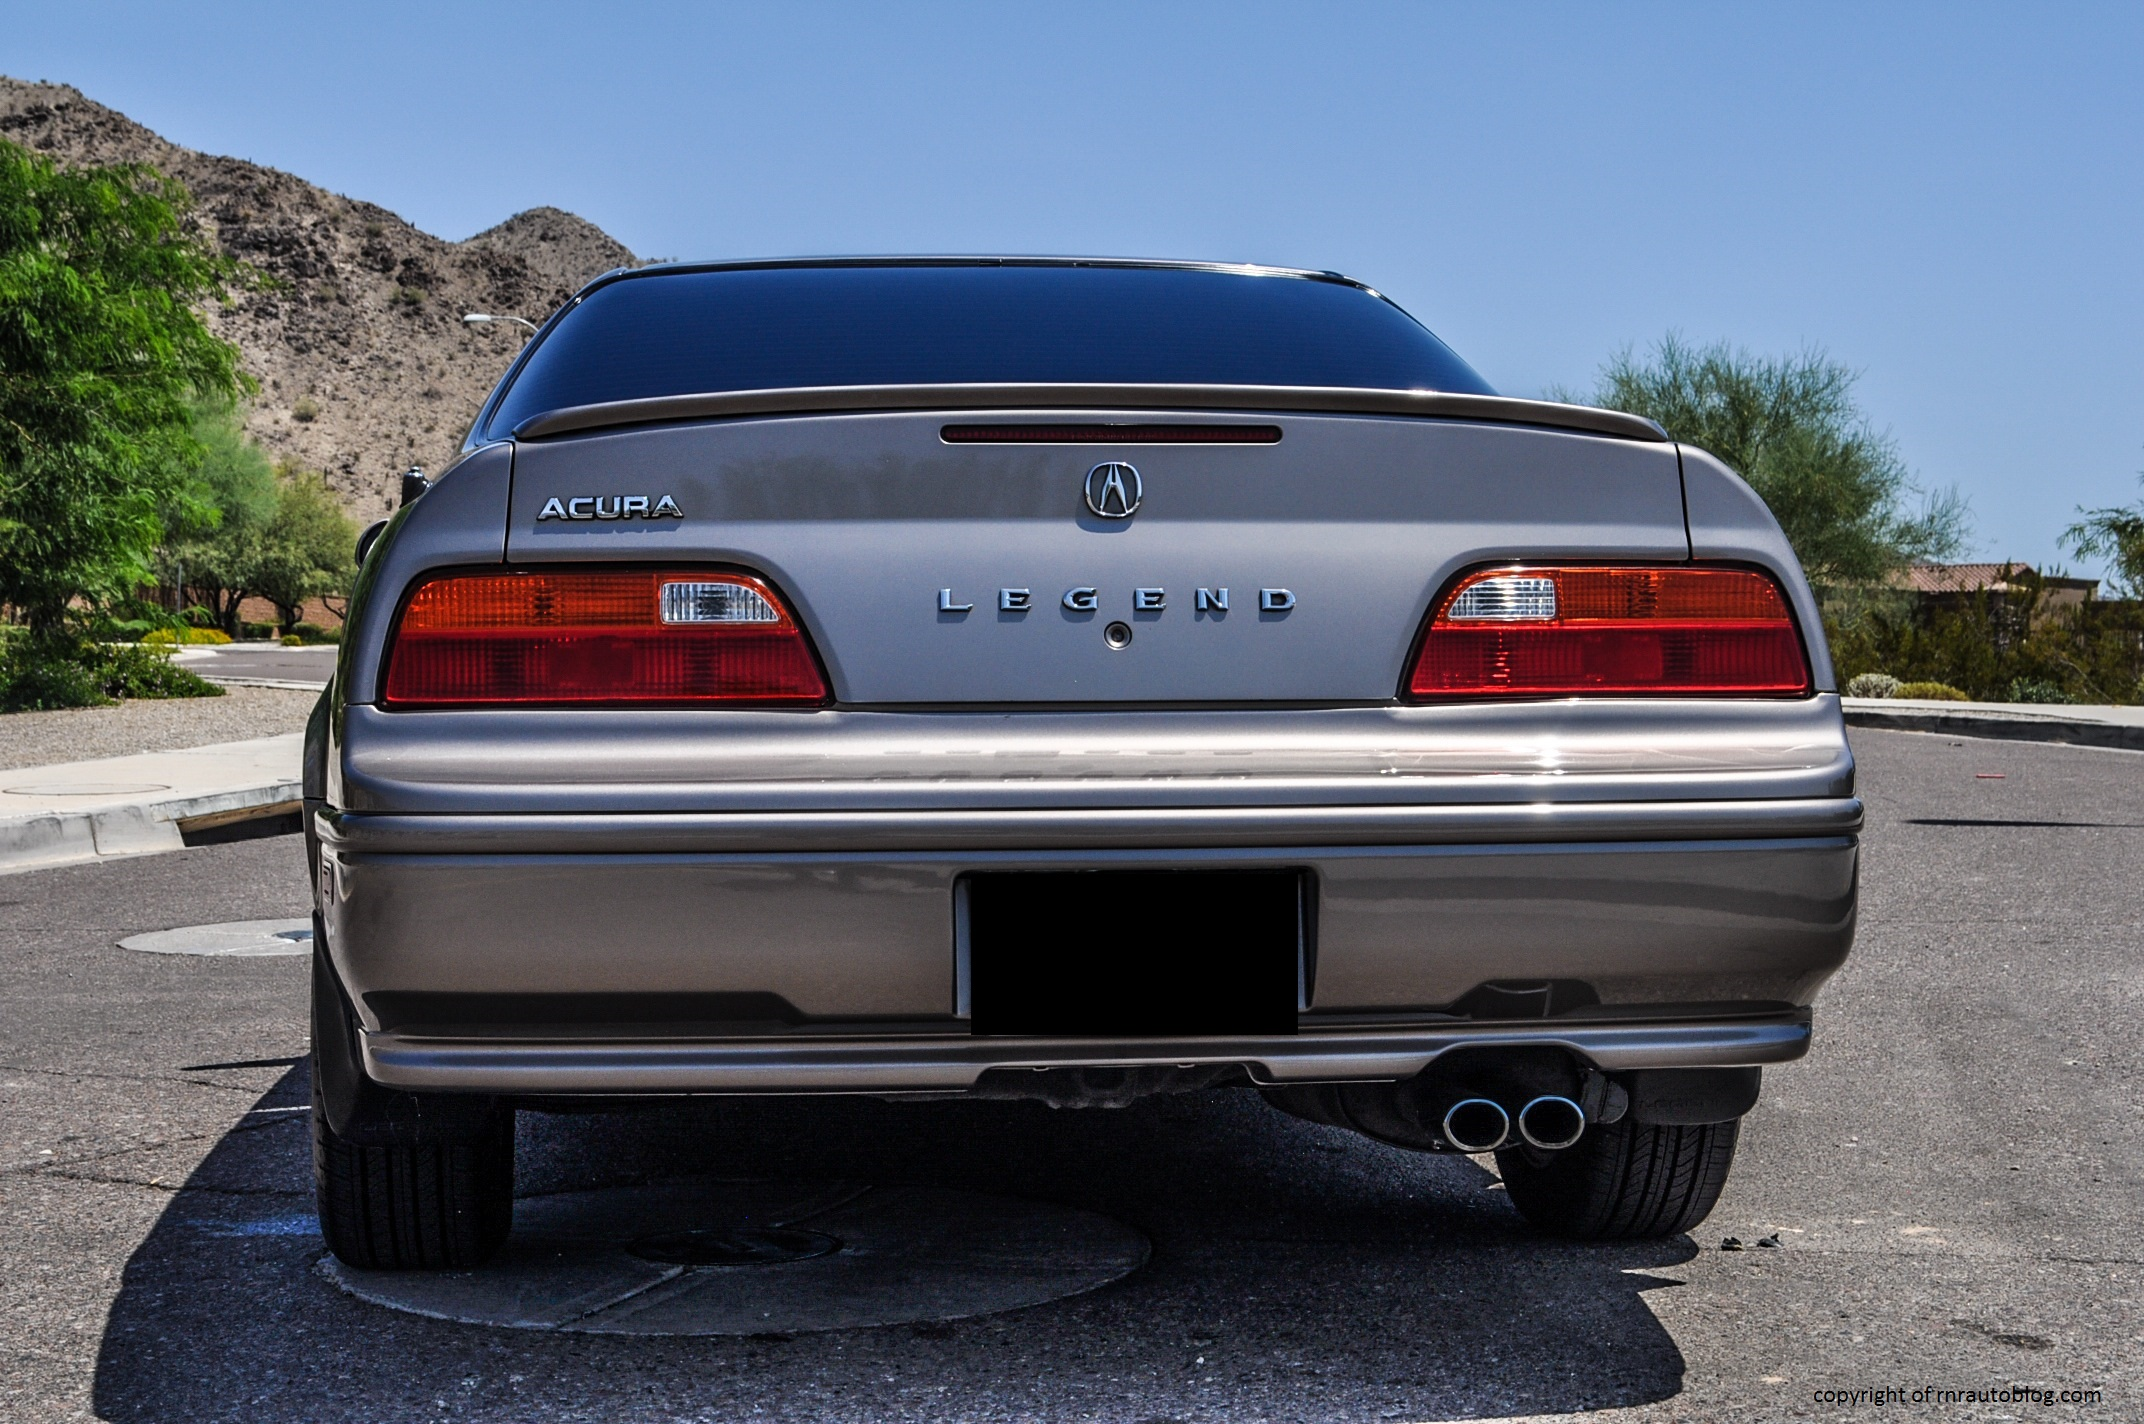 1994 Acura Legend Ls Coupe And Gs Sedan Review Rnr